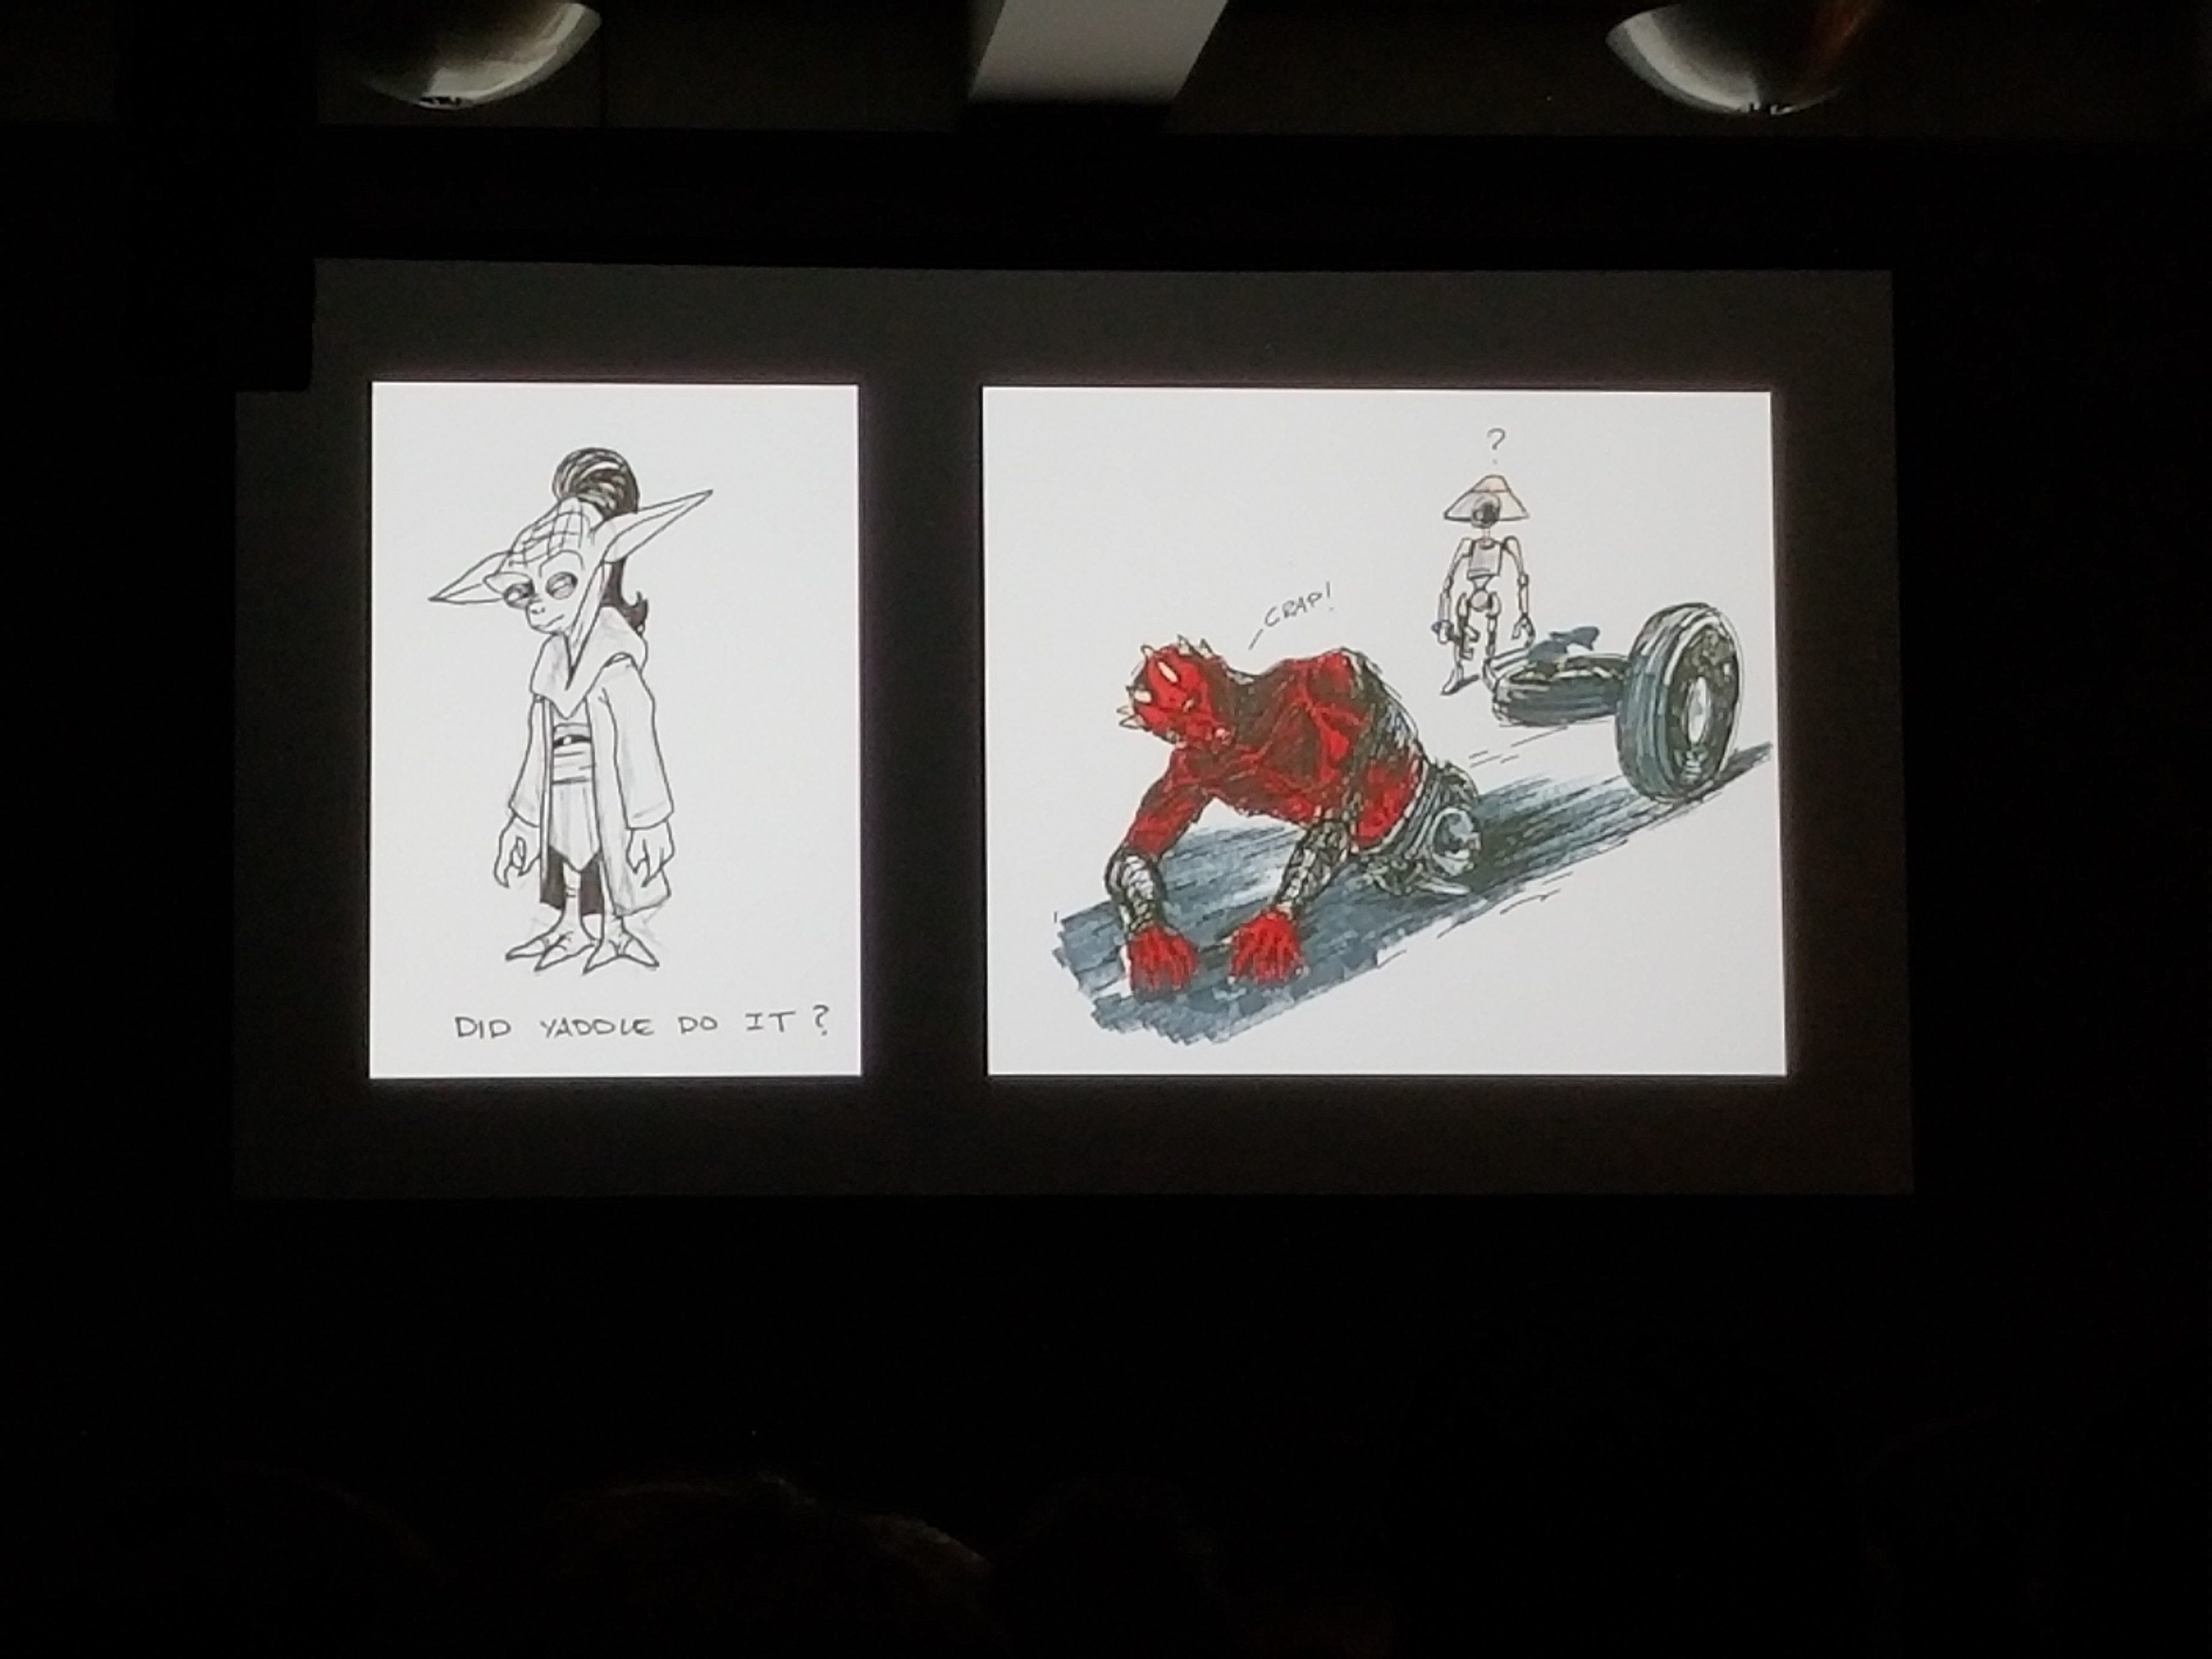 Showcasing a couple out of many sketches from Dave Filoni